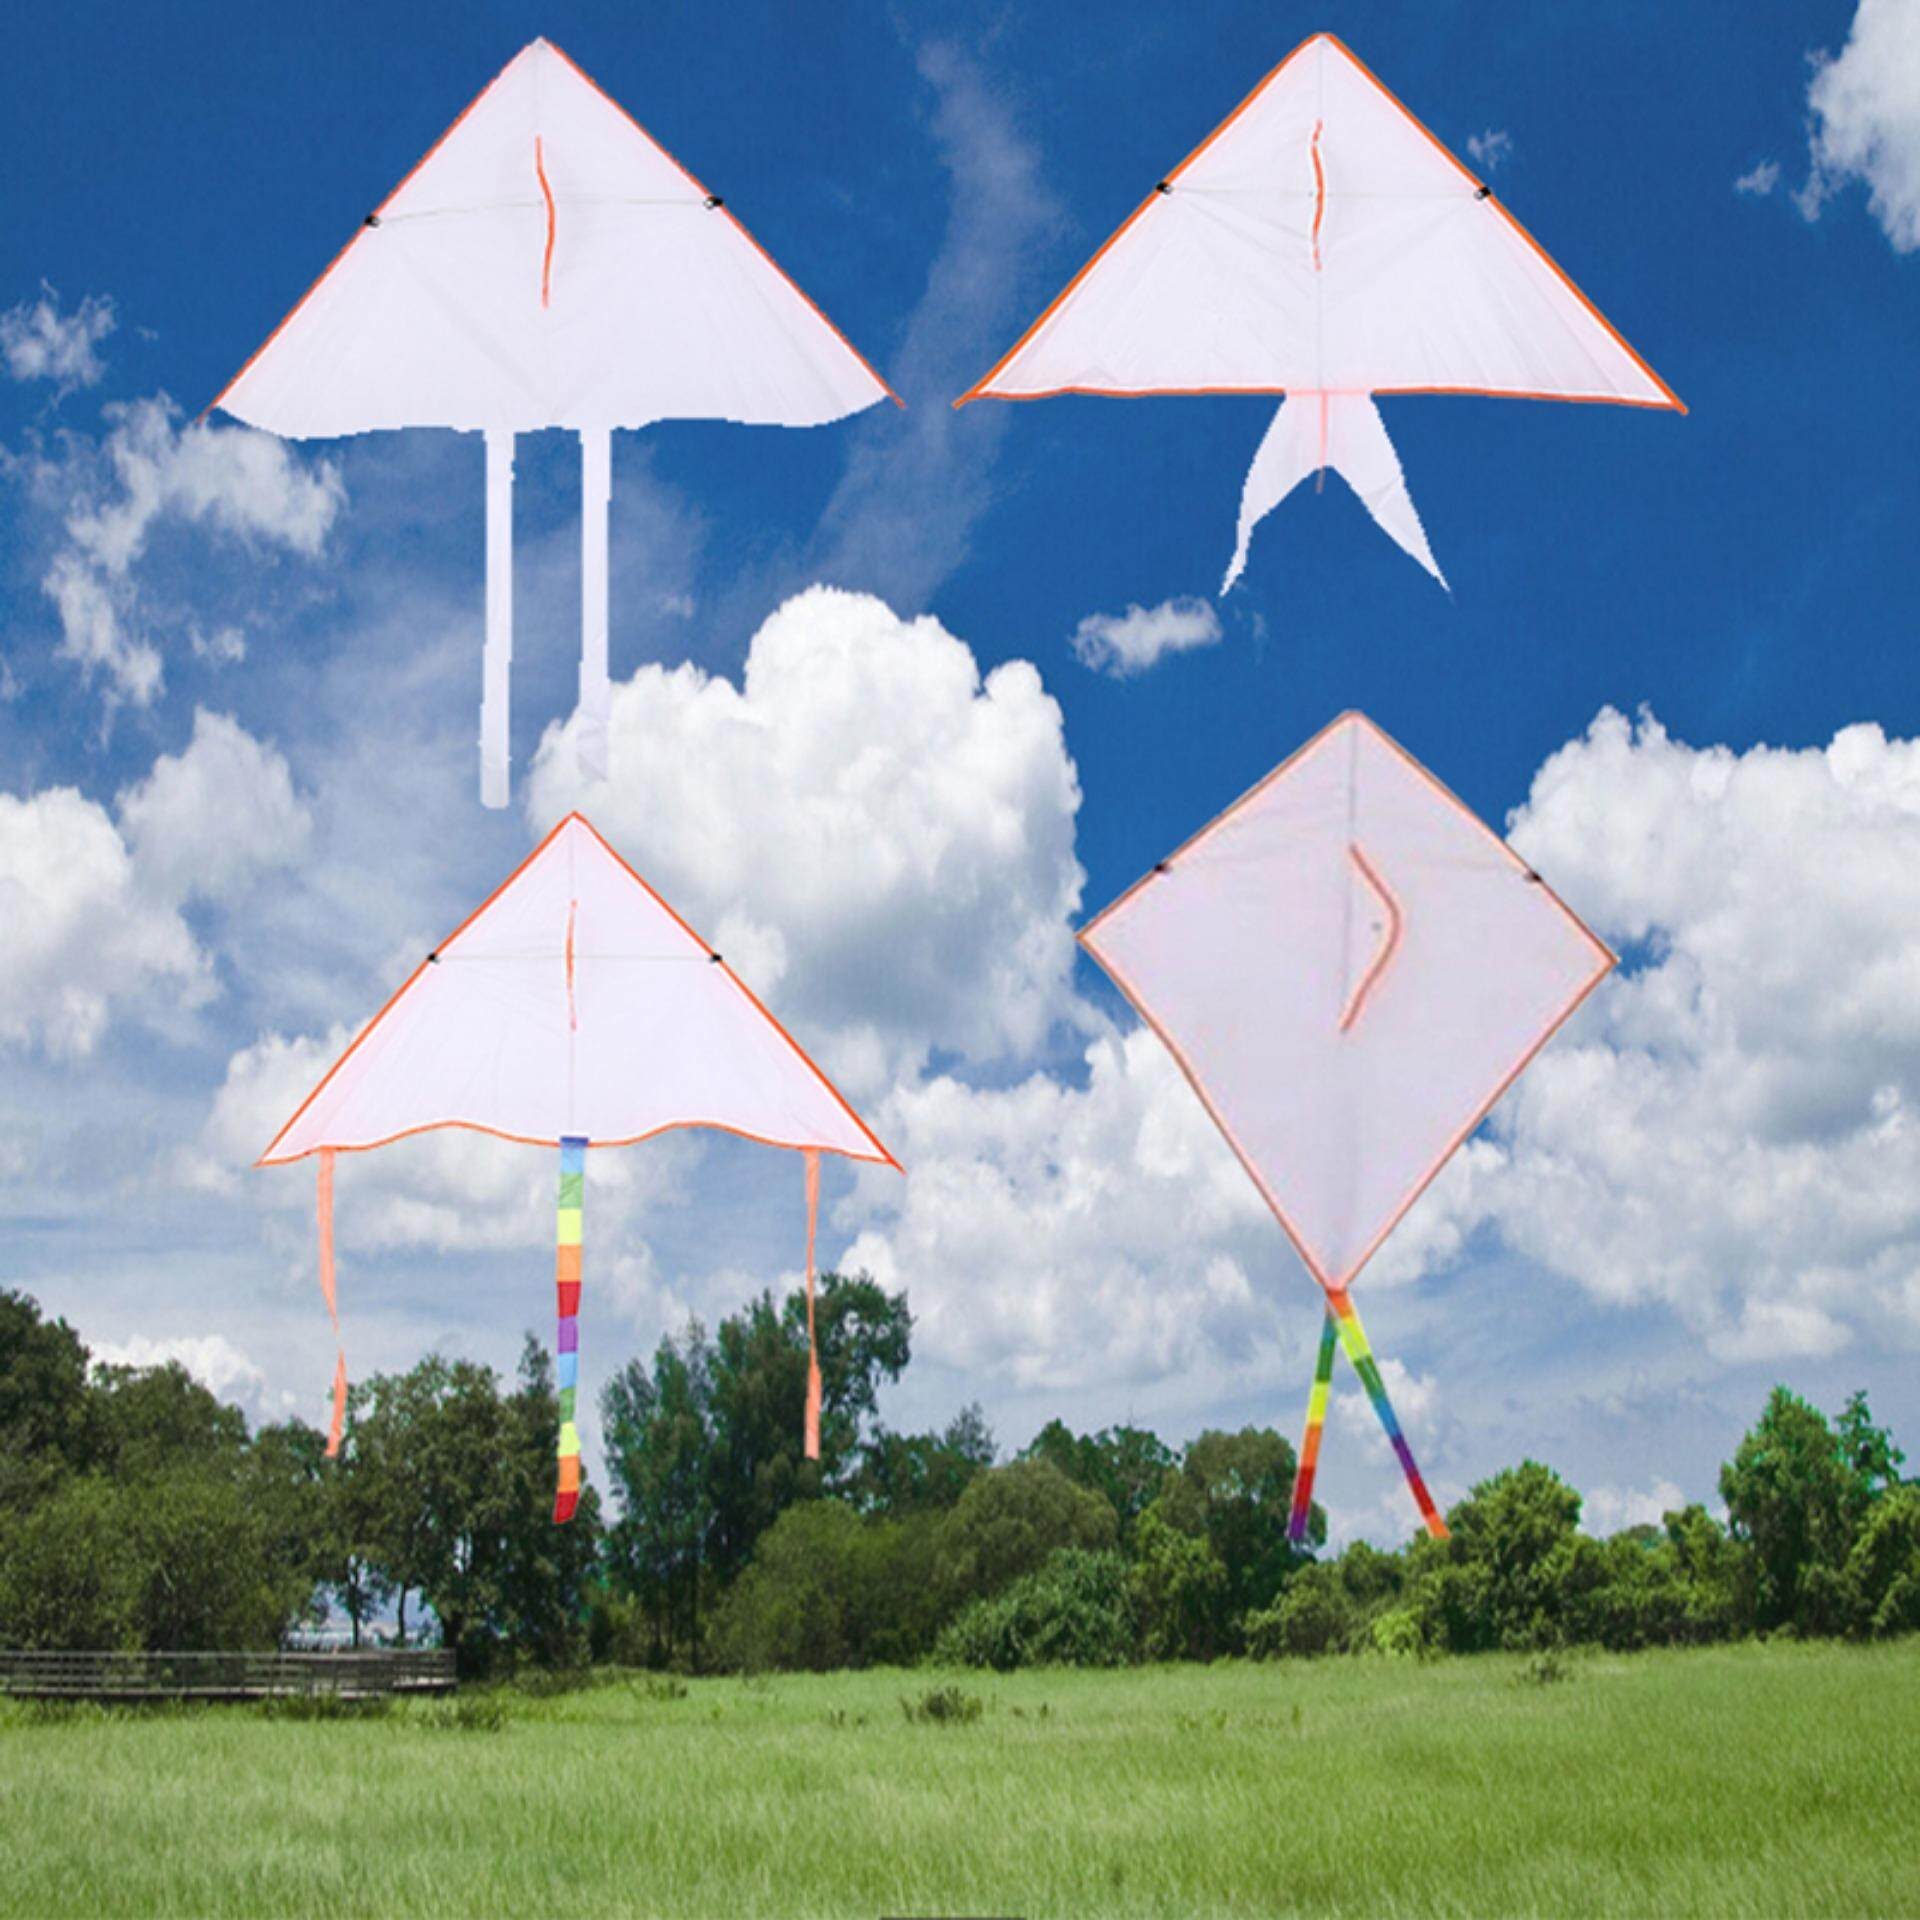 Outdoor Kite Diy Kite Painting Kite Without Handle Line Outdoor Flying Papalote 60x6x5 By Gorgeous Road.